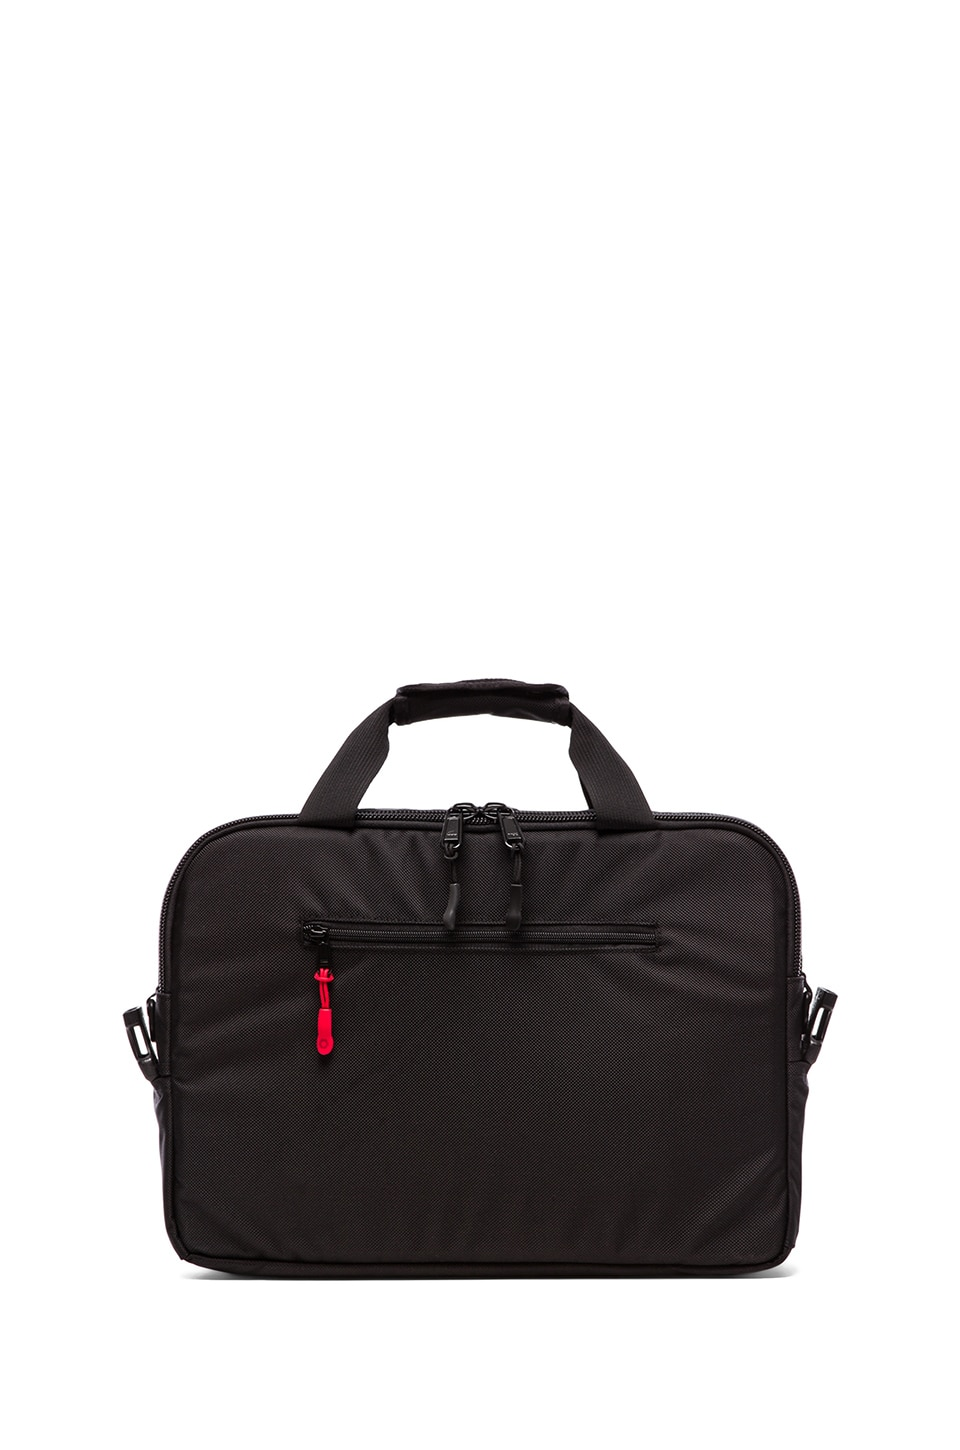 DSPTCH Briefcase in Black